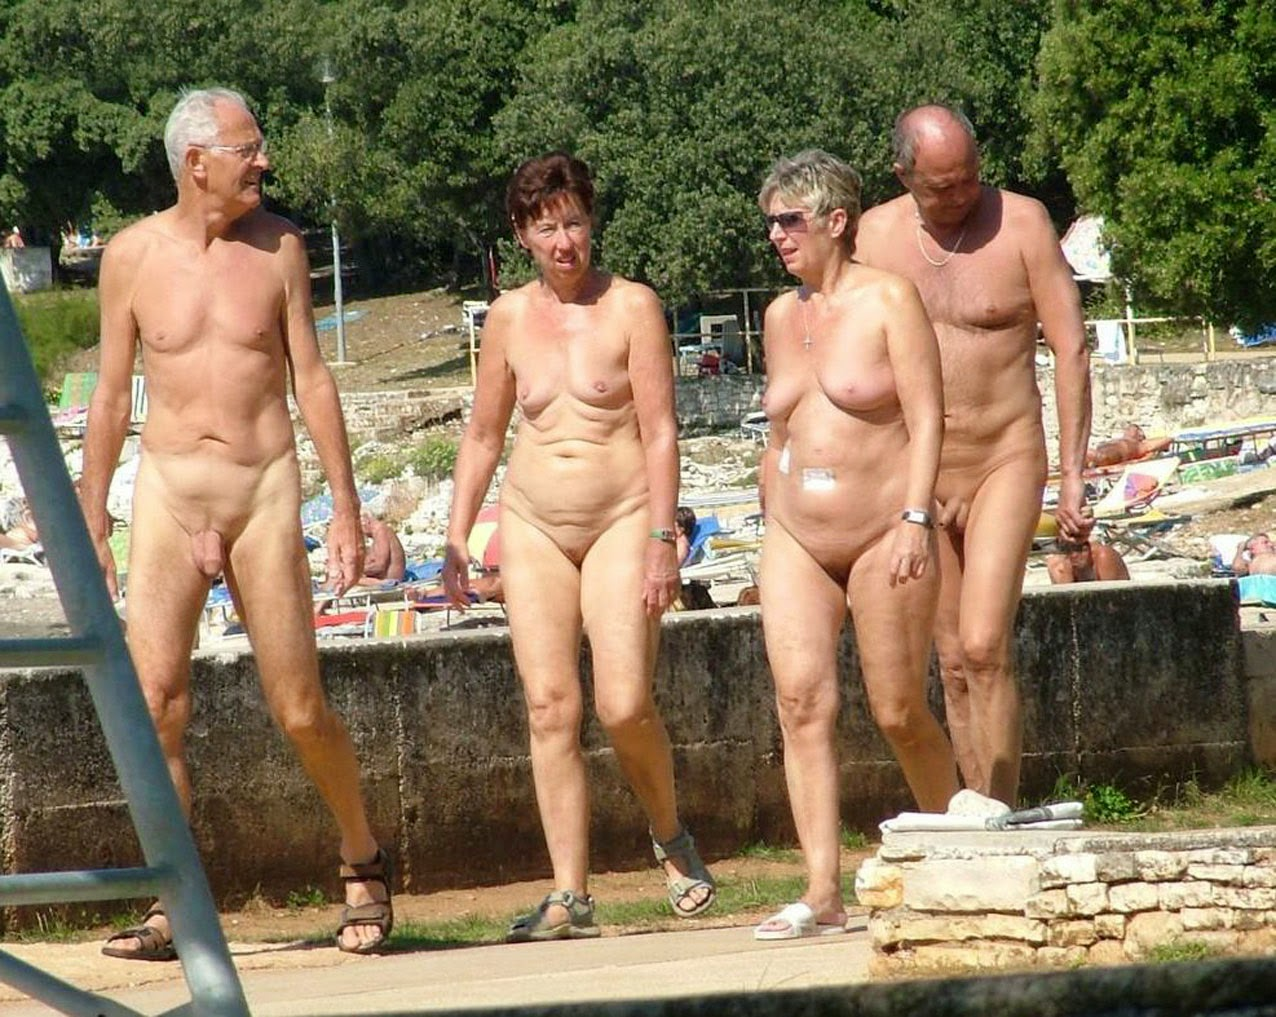 Family at nude beach